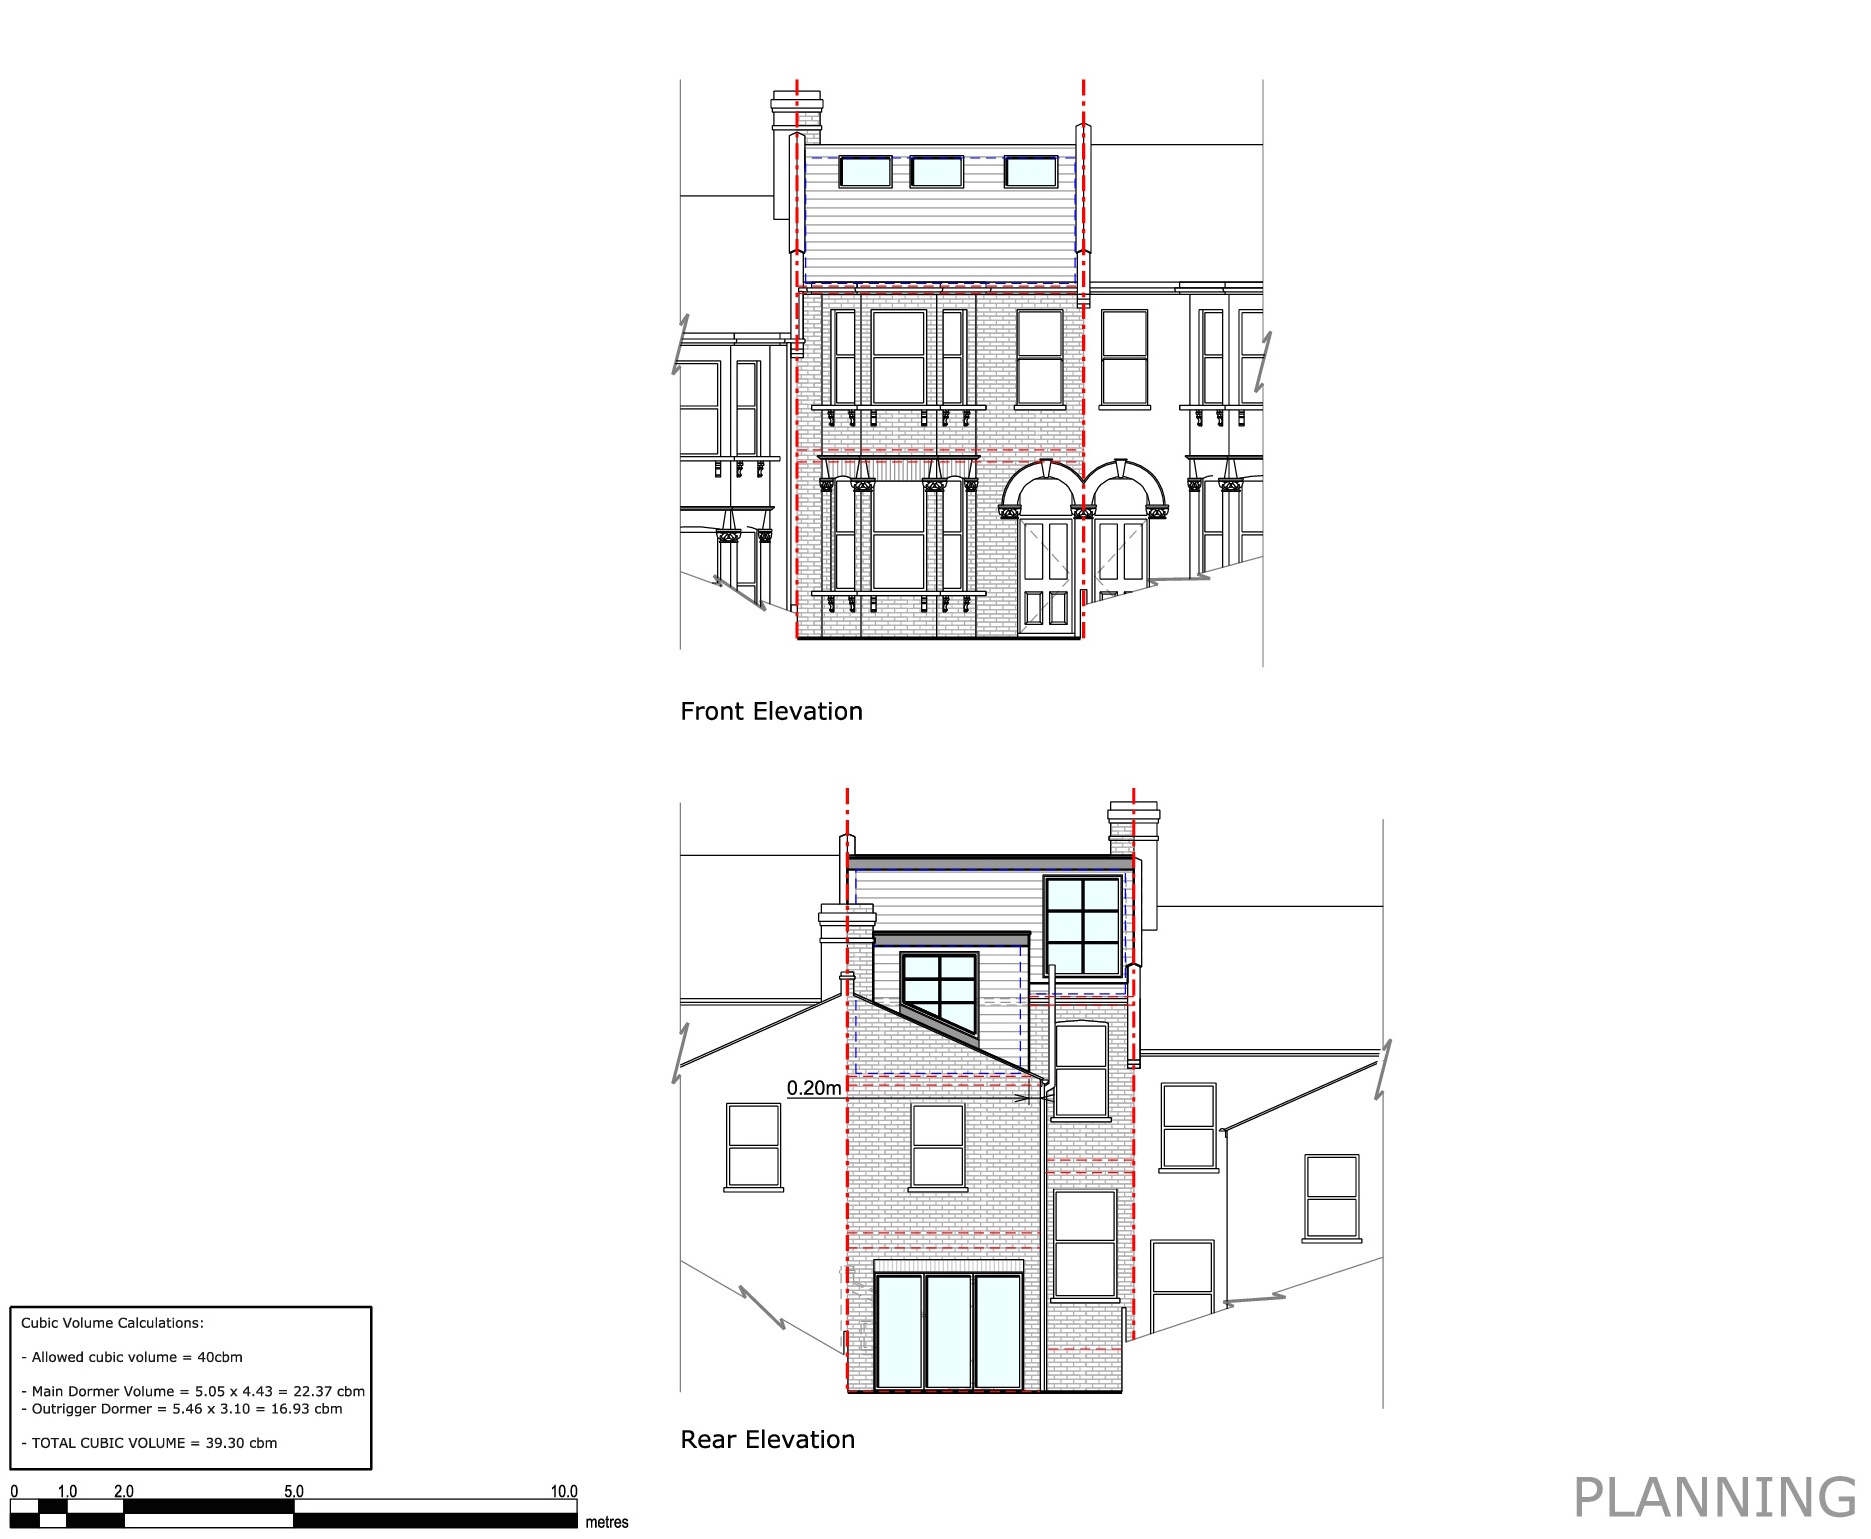 Proposed Elevations Front and Rear